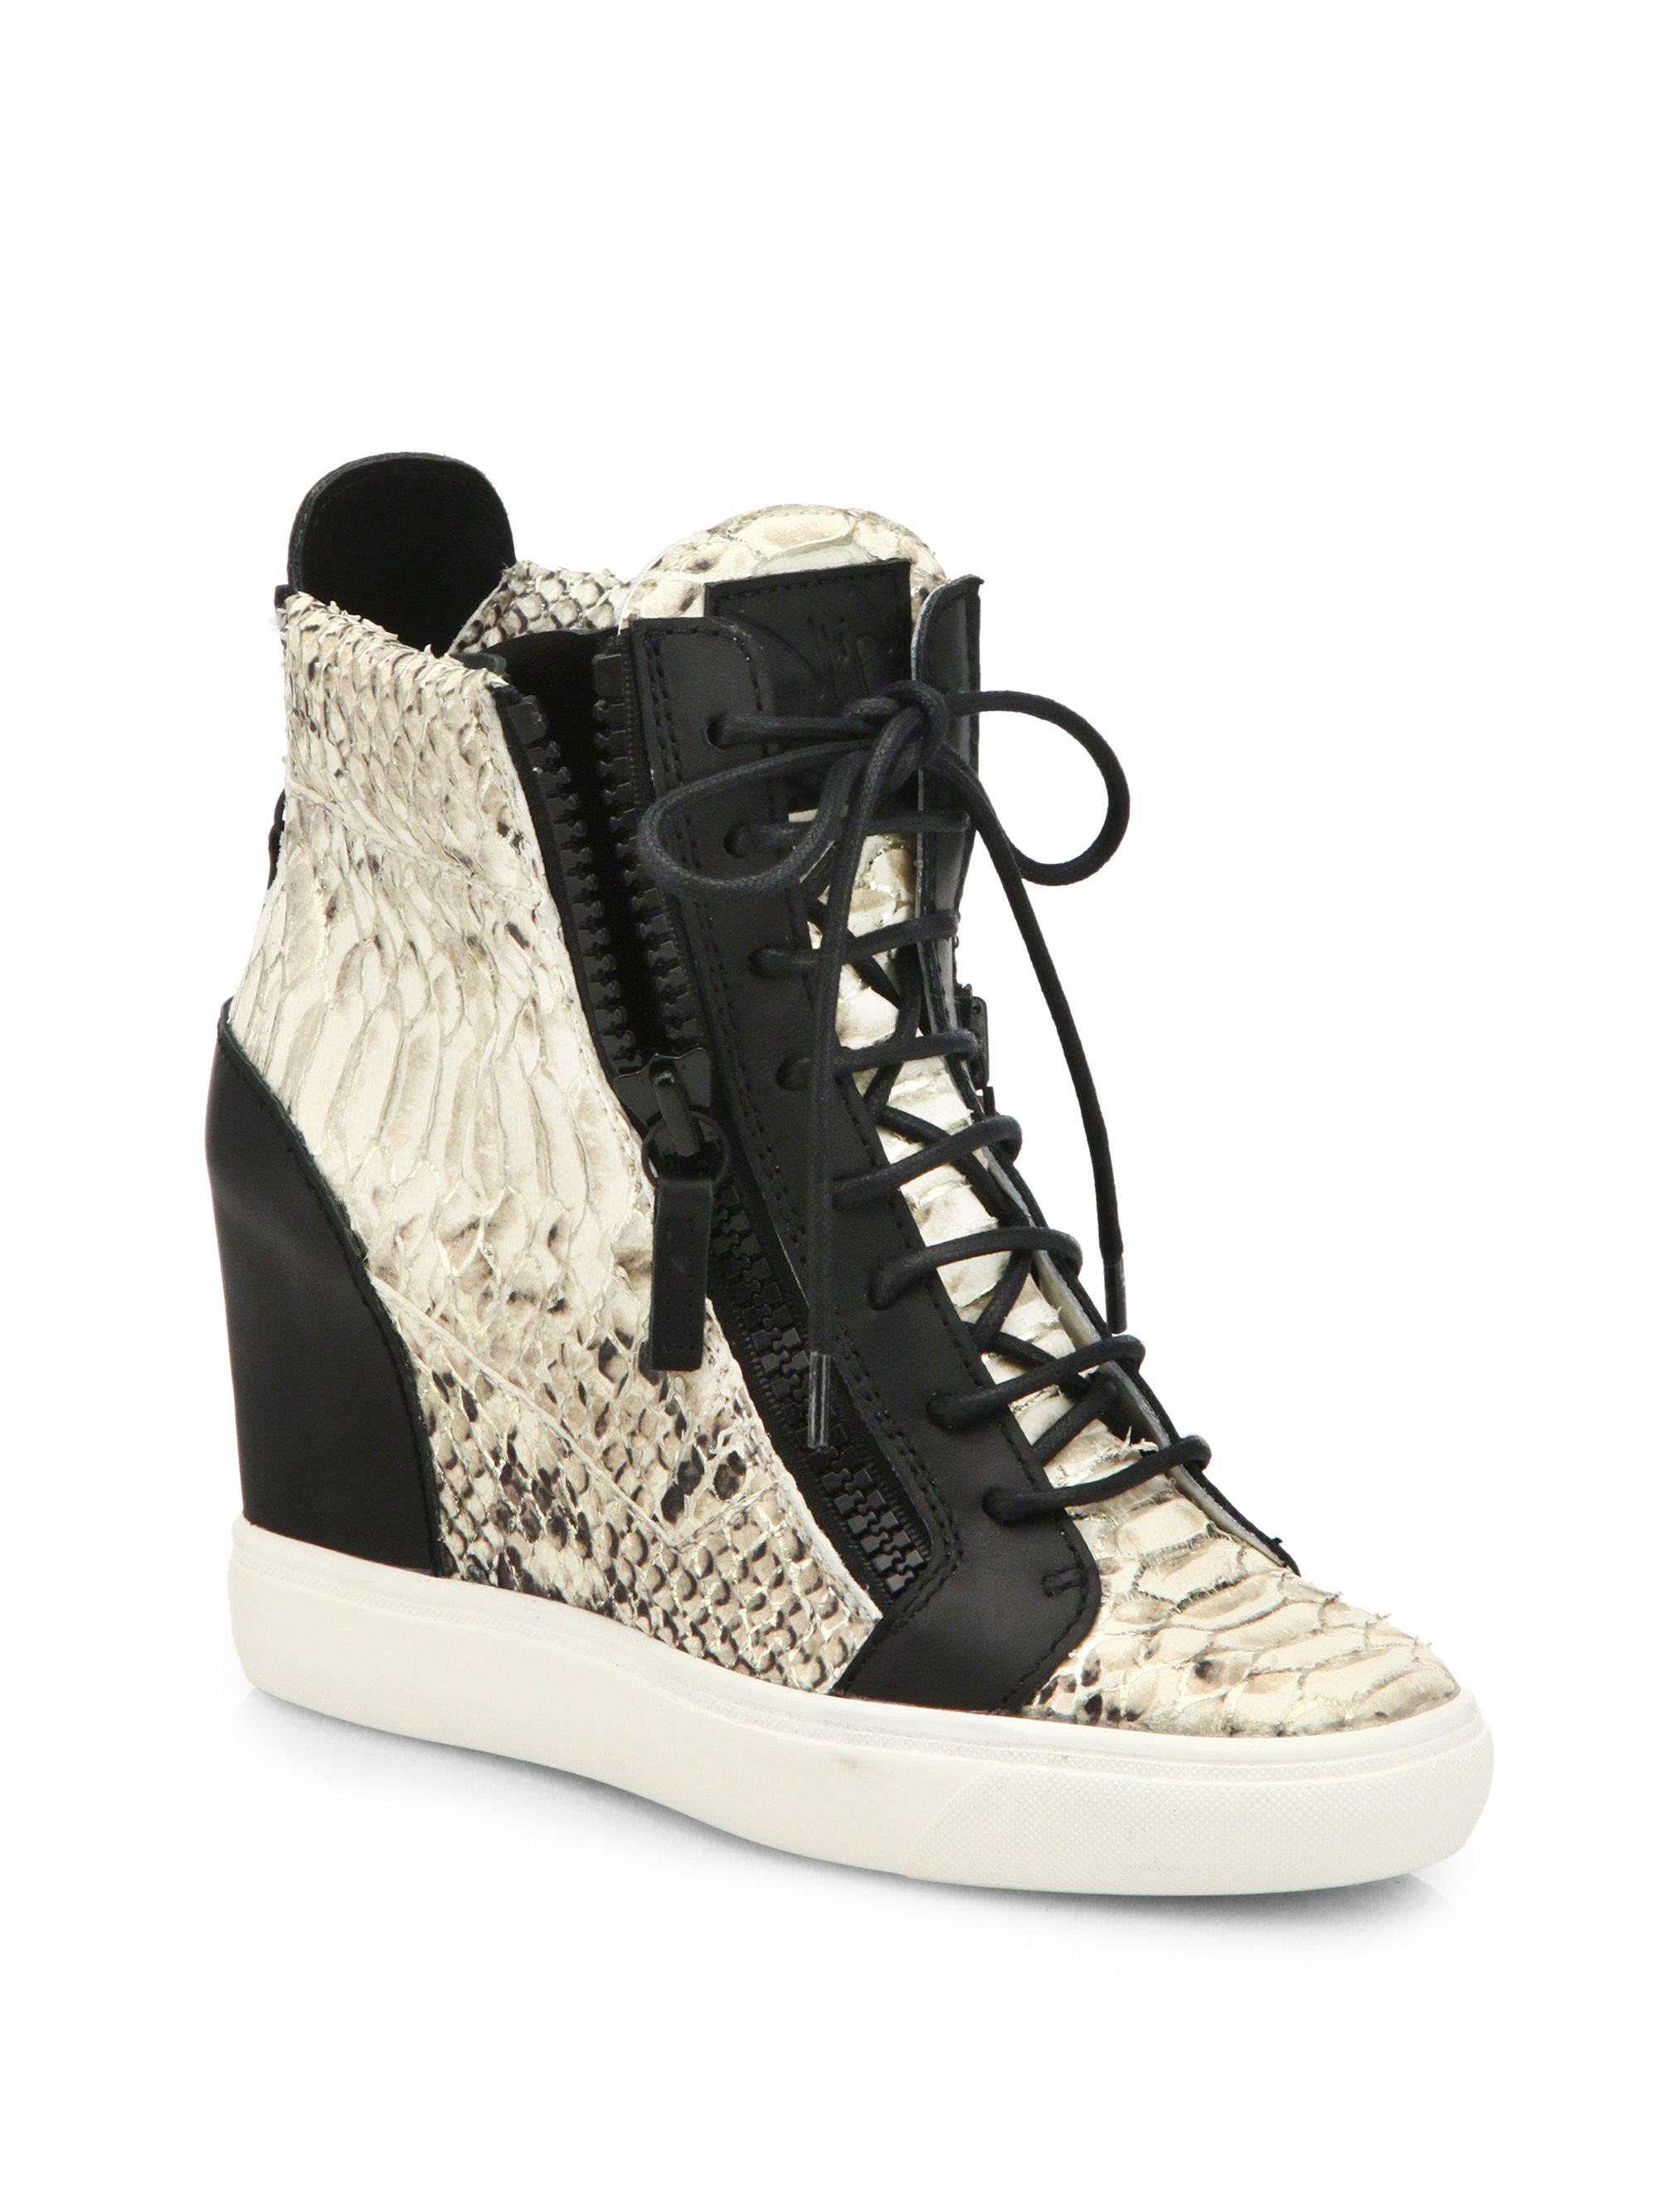 e087ce91ba1a Lyst - Giuseppe Zanotti Python   Leather Wedge Sneakers in Black